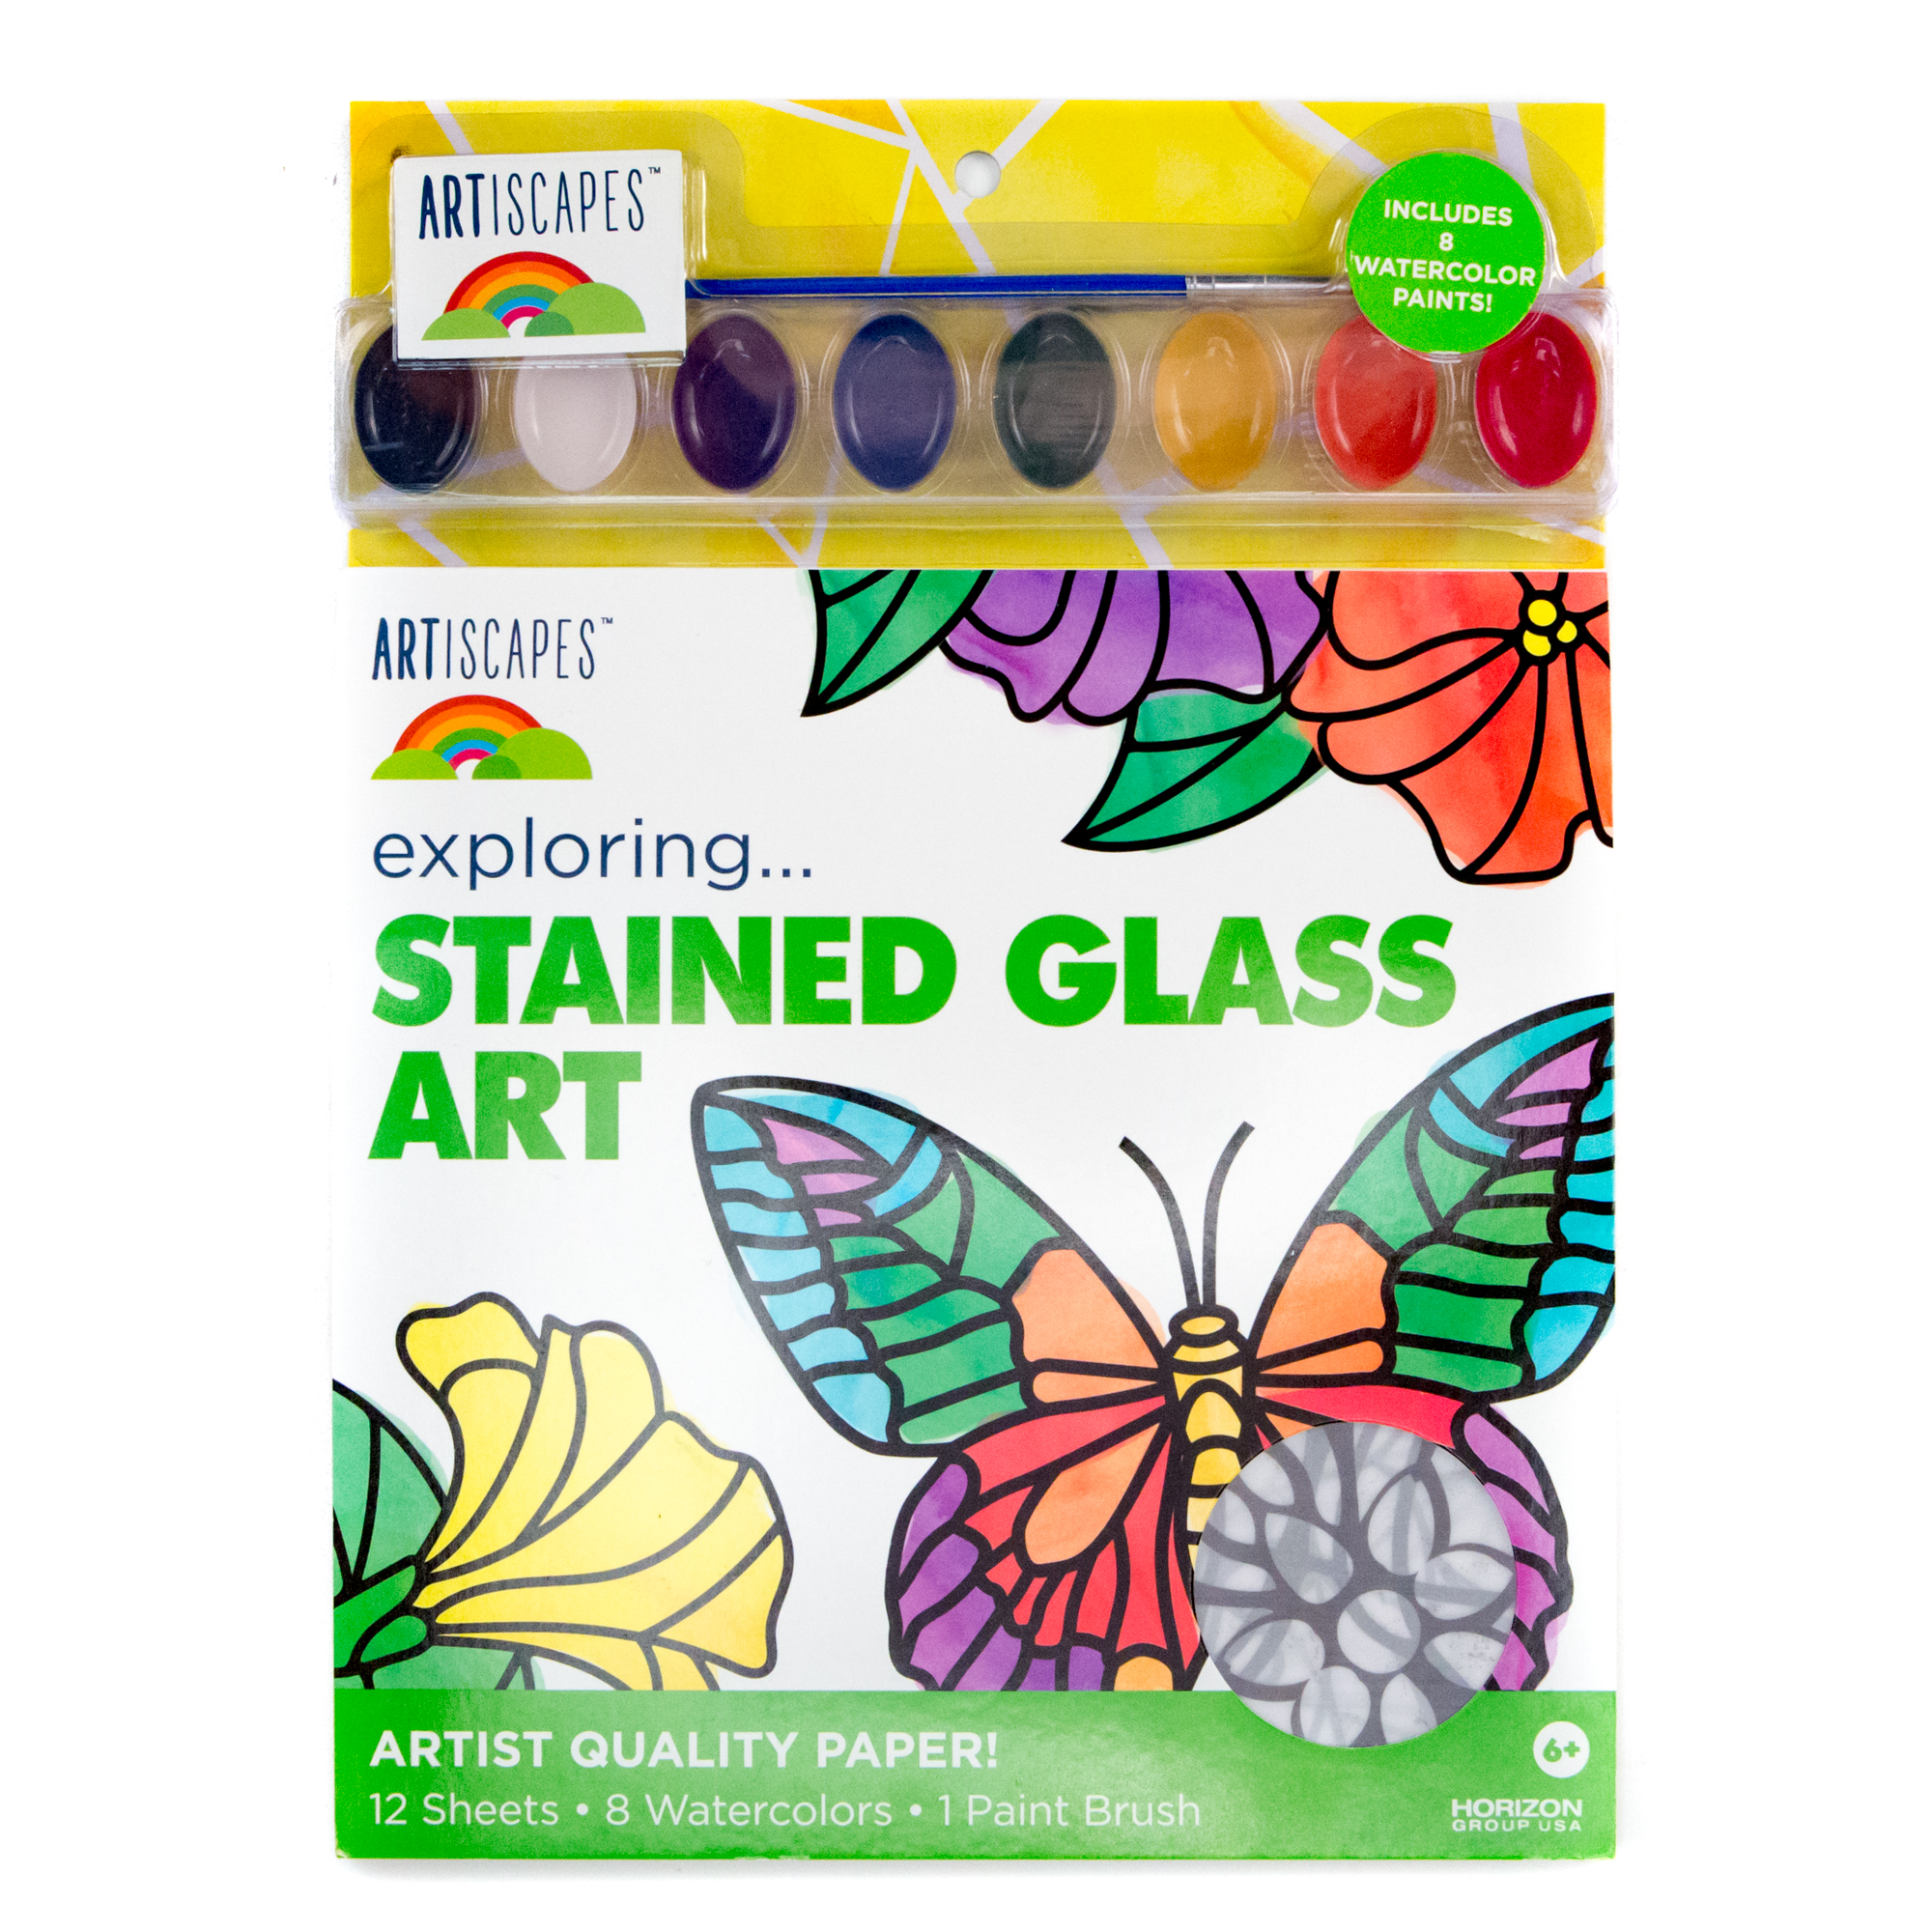 artiscapes stained glass art kit